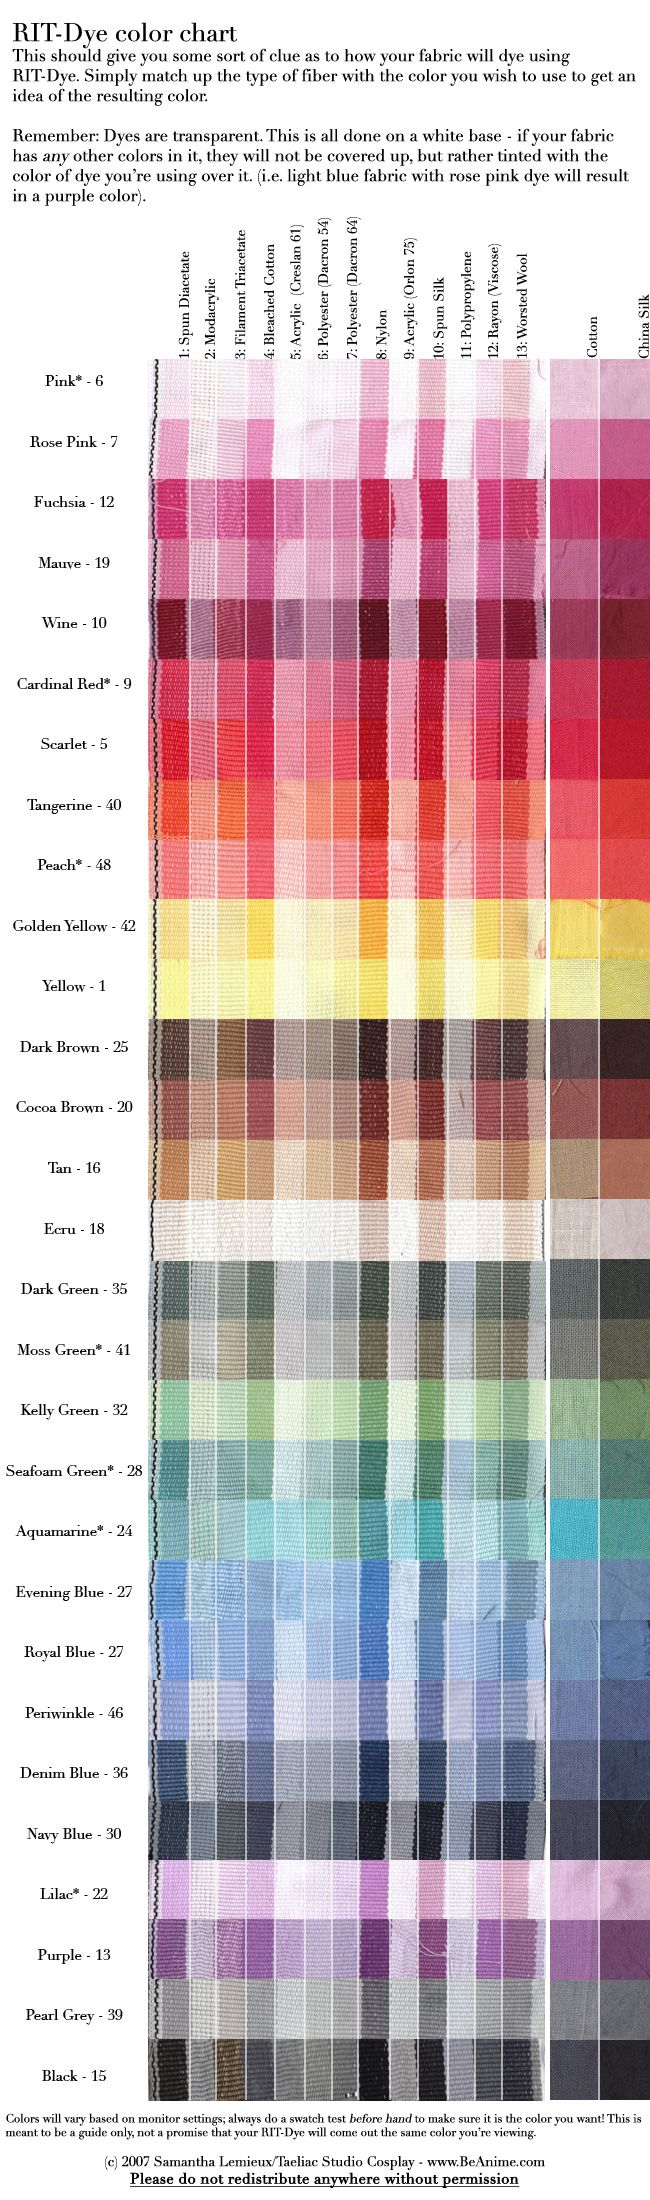 Rit dye color chart lists the different rit colors and shows rit dye color chart lists the different rit colors and shows what that color dye nvjuhfo Choice Image